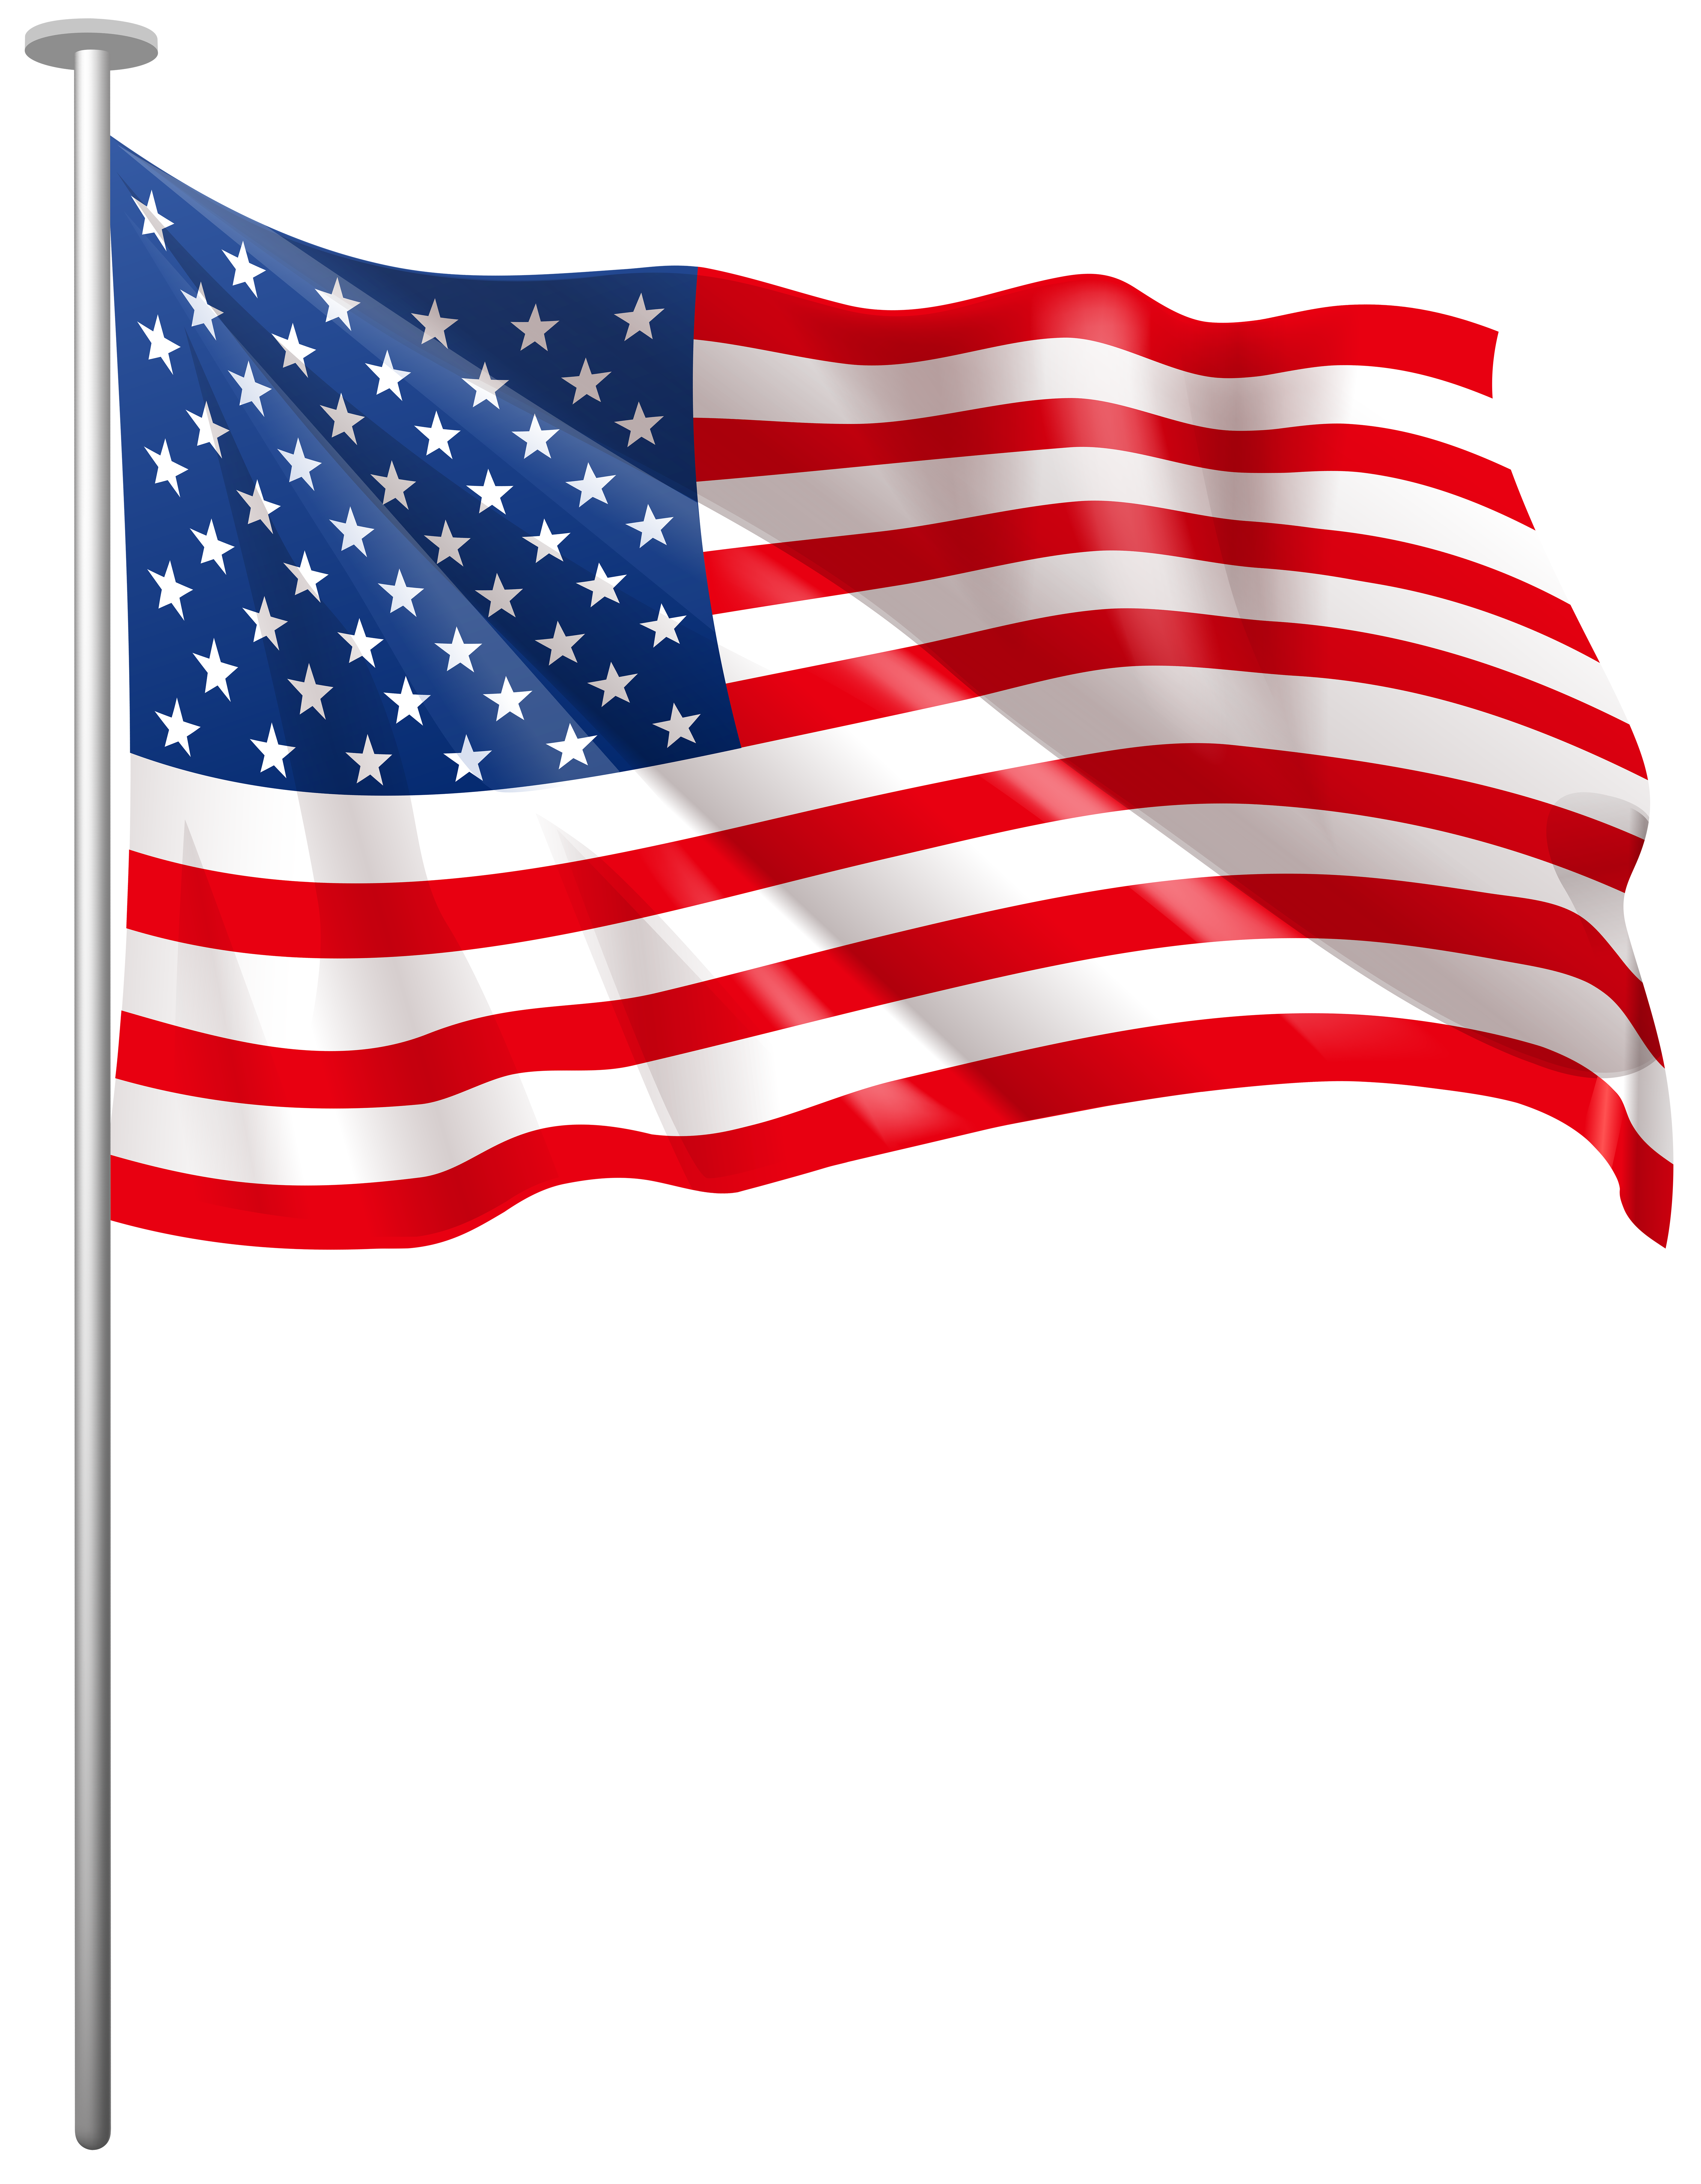 Flag of the United States Scalable Vector Graphics Clip art.